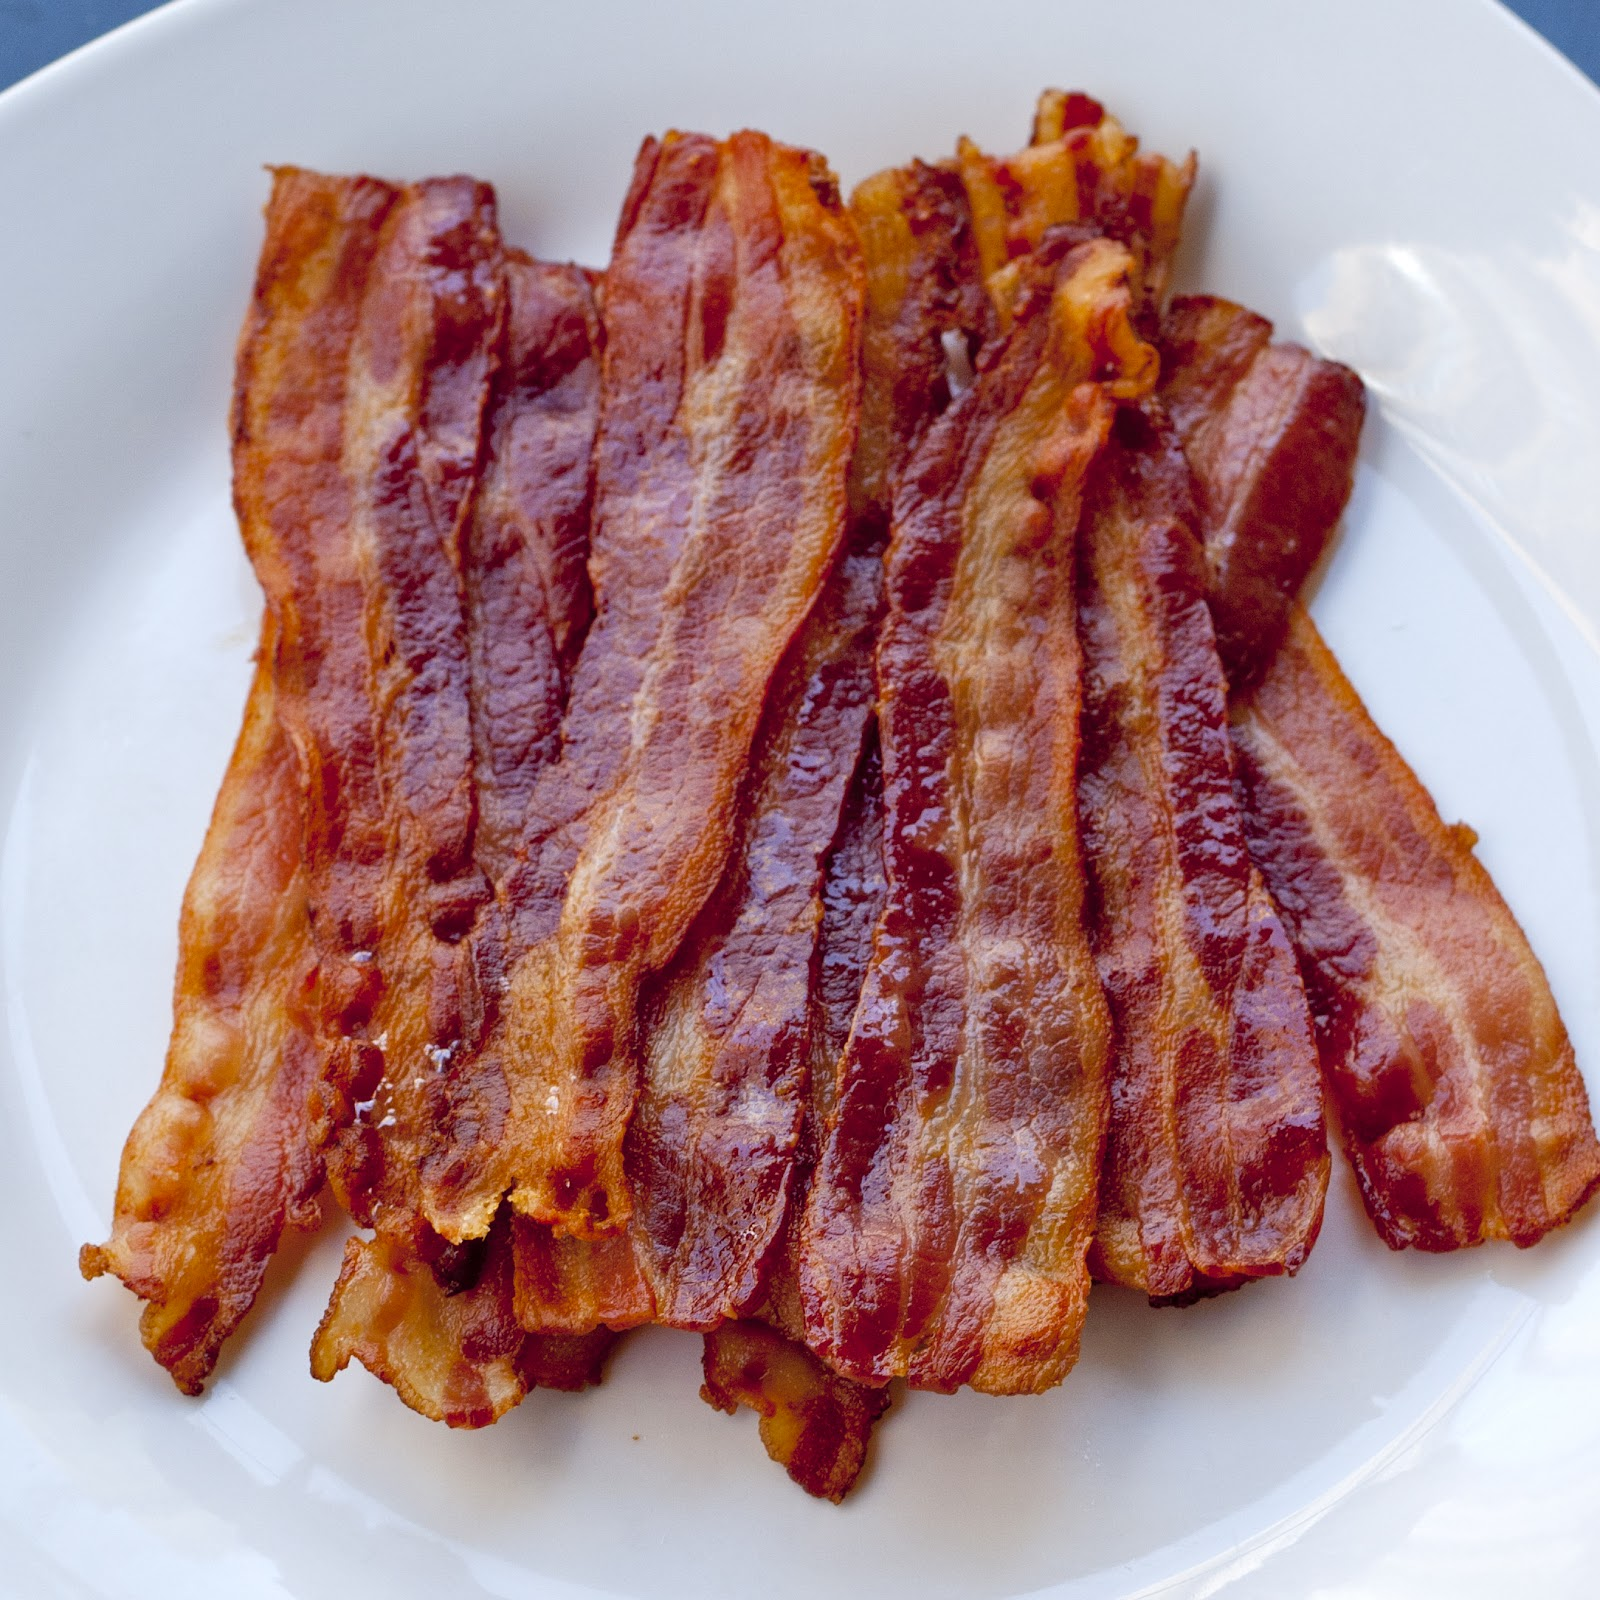 improvKitchen_howToCookBacon_00.jpg